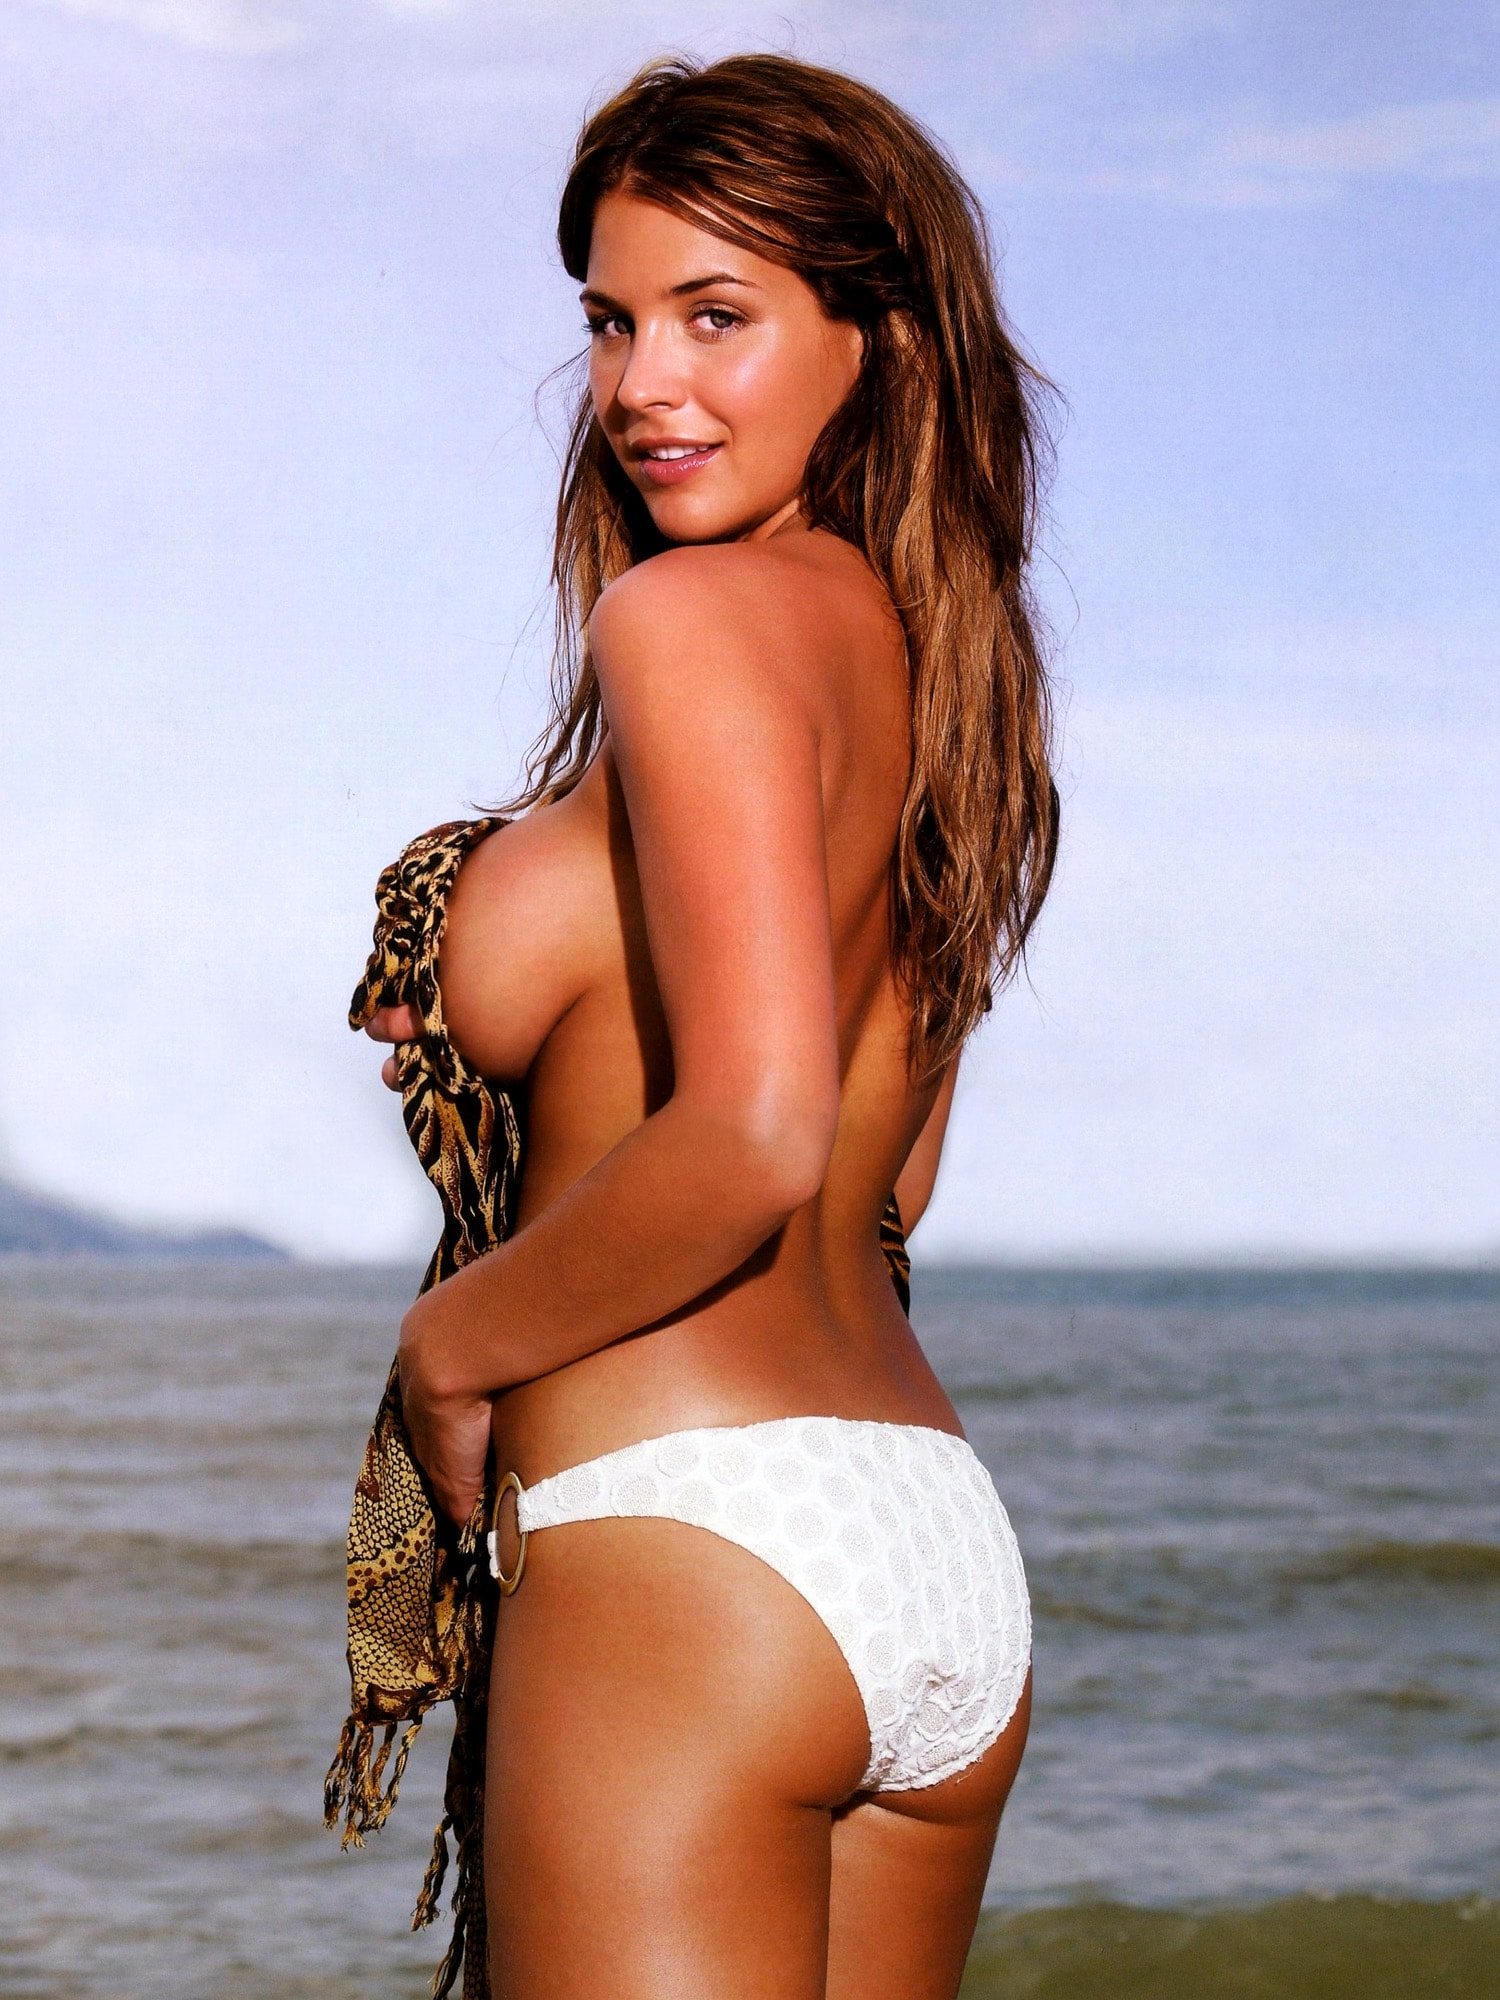 gemma atkinson topless pictures